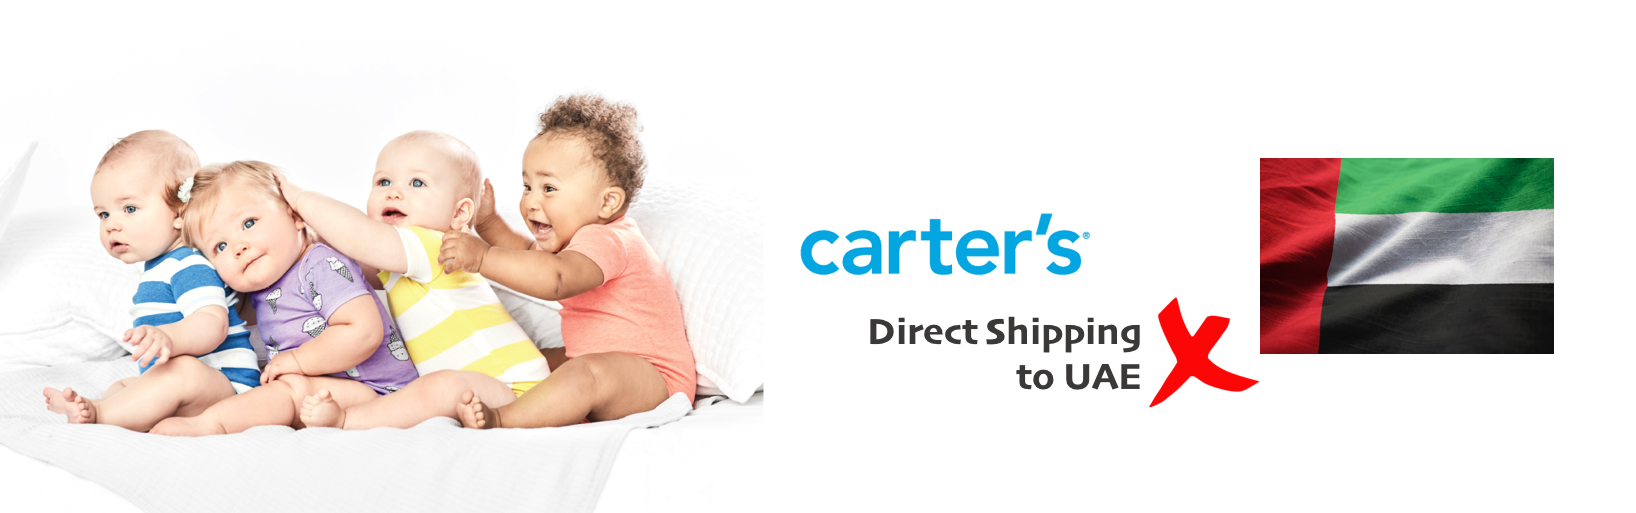 shop carter's ship to uae